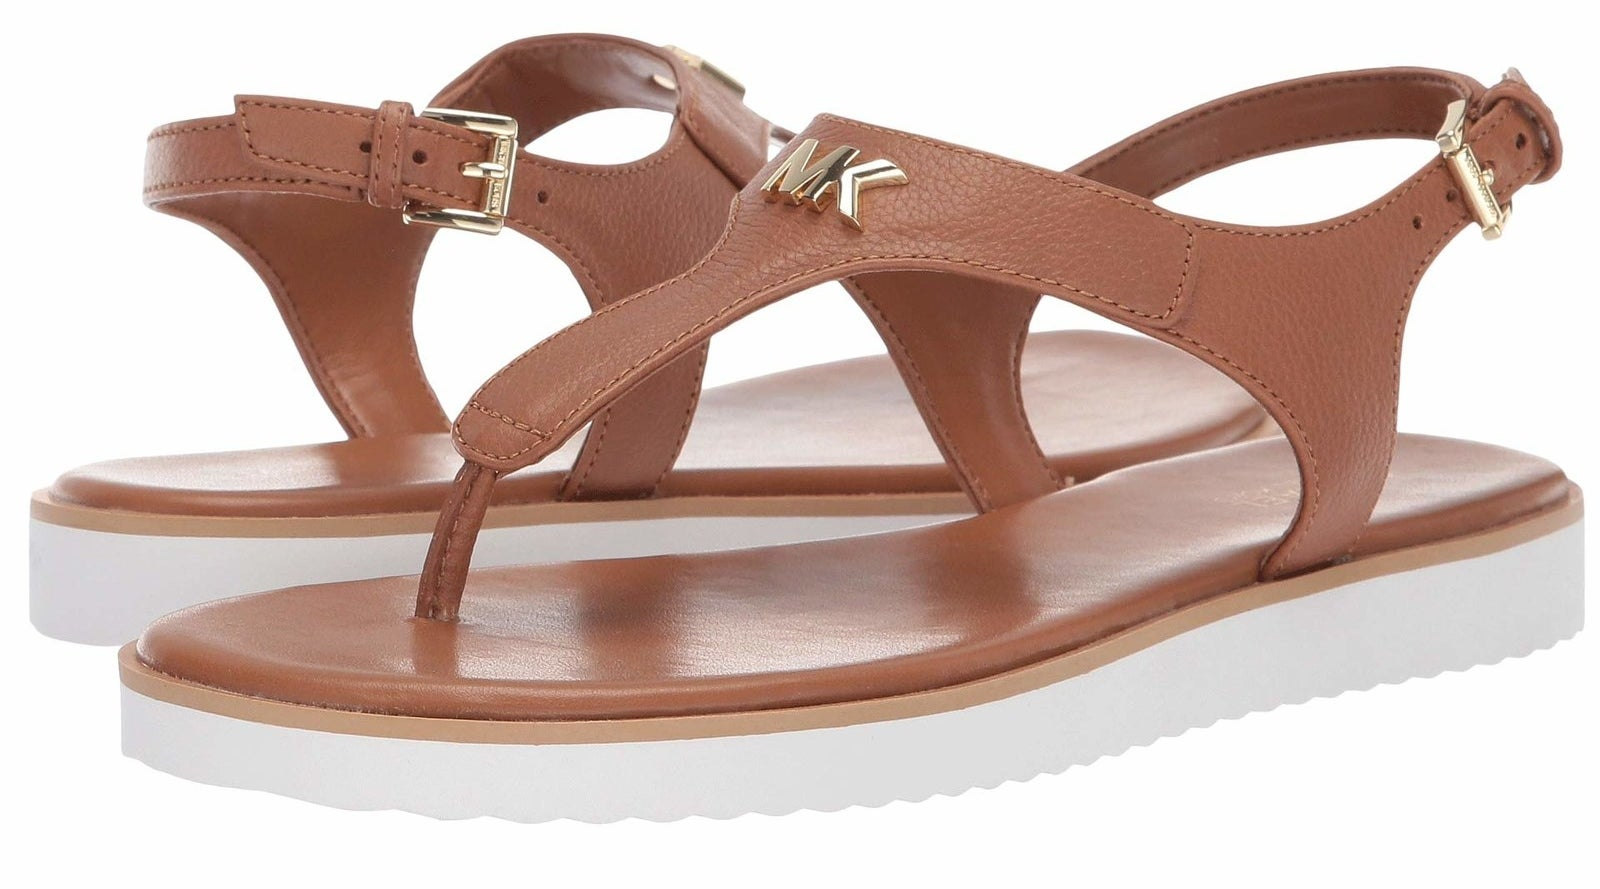 """""""They are are life! Simple and stylish for any occasion, a bunch of colors for every outfit, and comfortable enough to walk around a city all day! I buy a new pair in a new color every year!""""—a42fc3f2a0Although the specific Sondra sandals seem to be sold out everywhere (you can check out PoshMark for pre-owned pairs), you can get a similar style from Michael Kors on Nordstrom for $89 (available in women's sizes 5–11 and two colors)."""